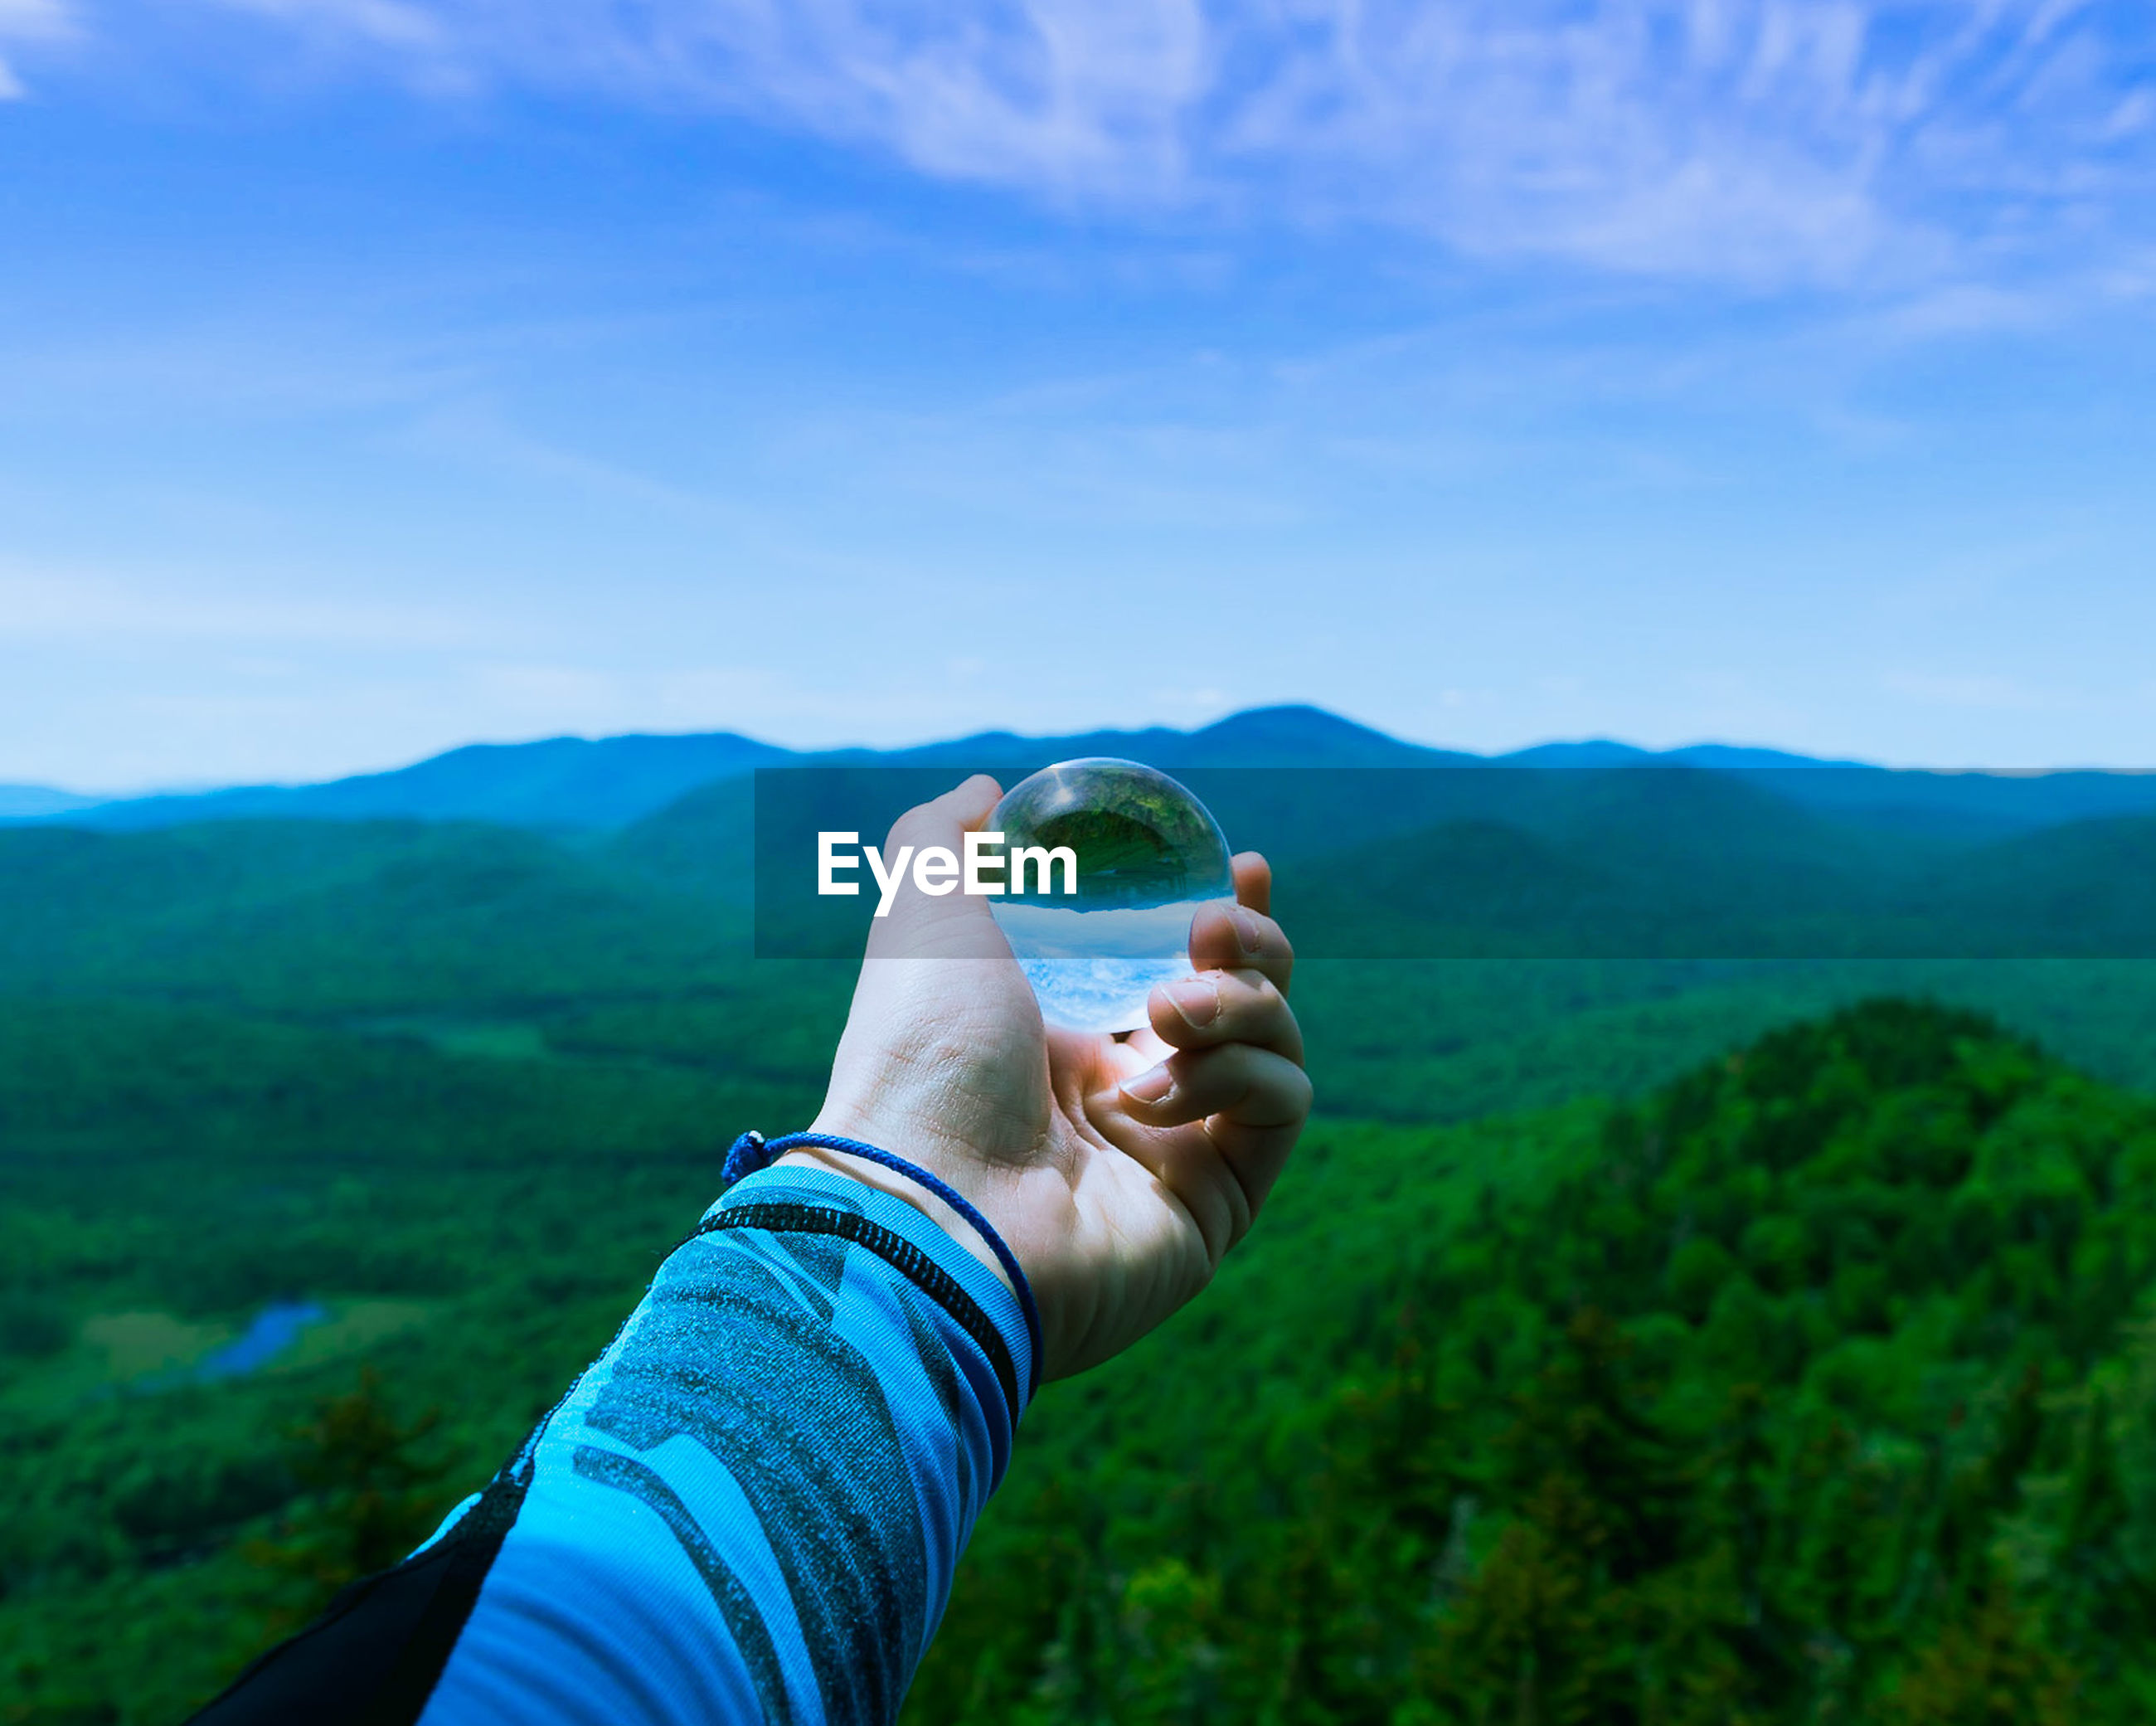 Cropped image of person holding crystal ball against mountains